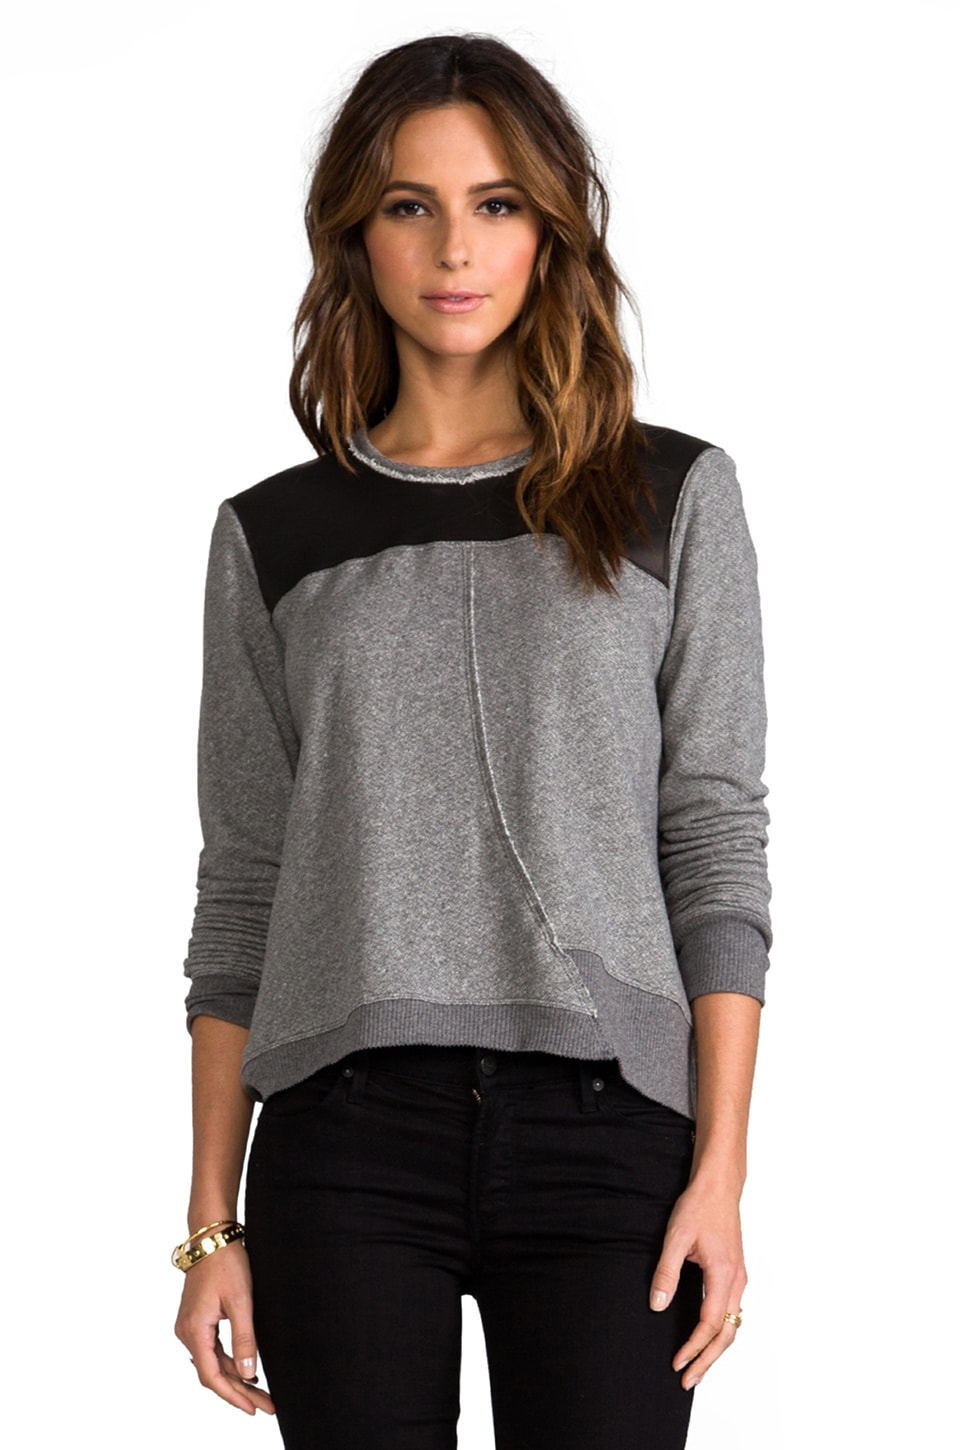 Wilt Crop Raw Twist Leather Mix Sweatshirt in Charcoal/Black